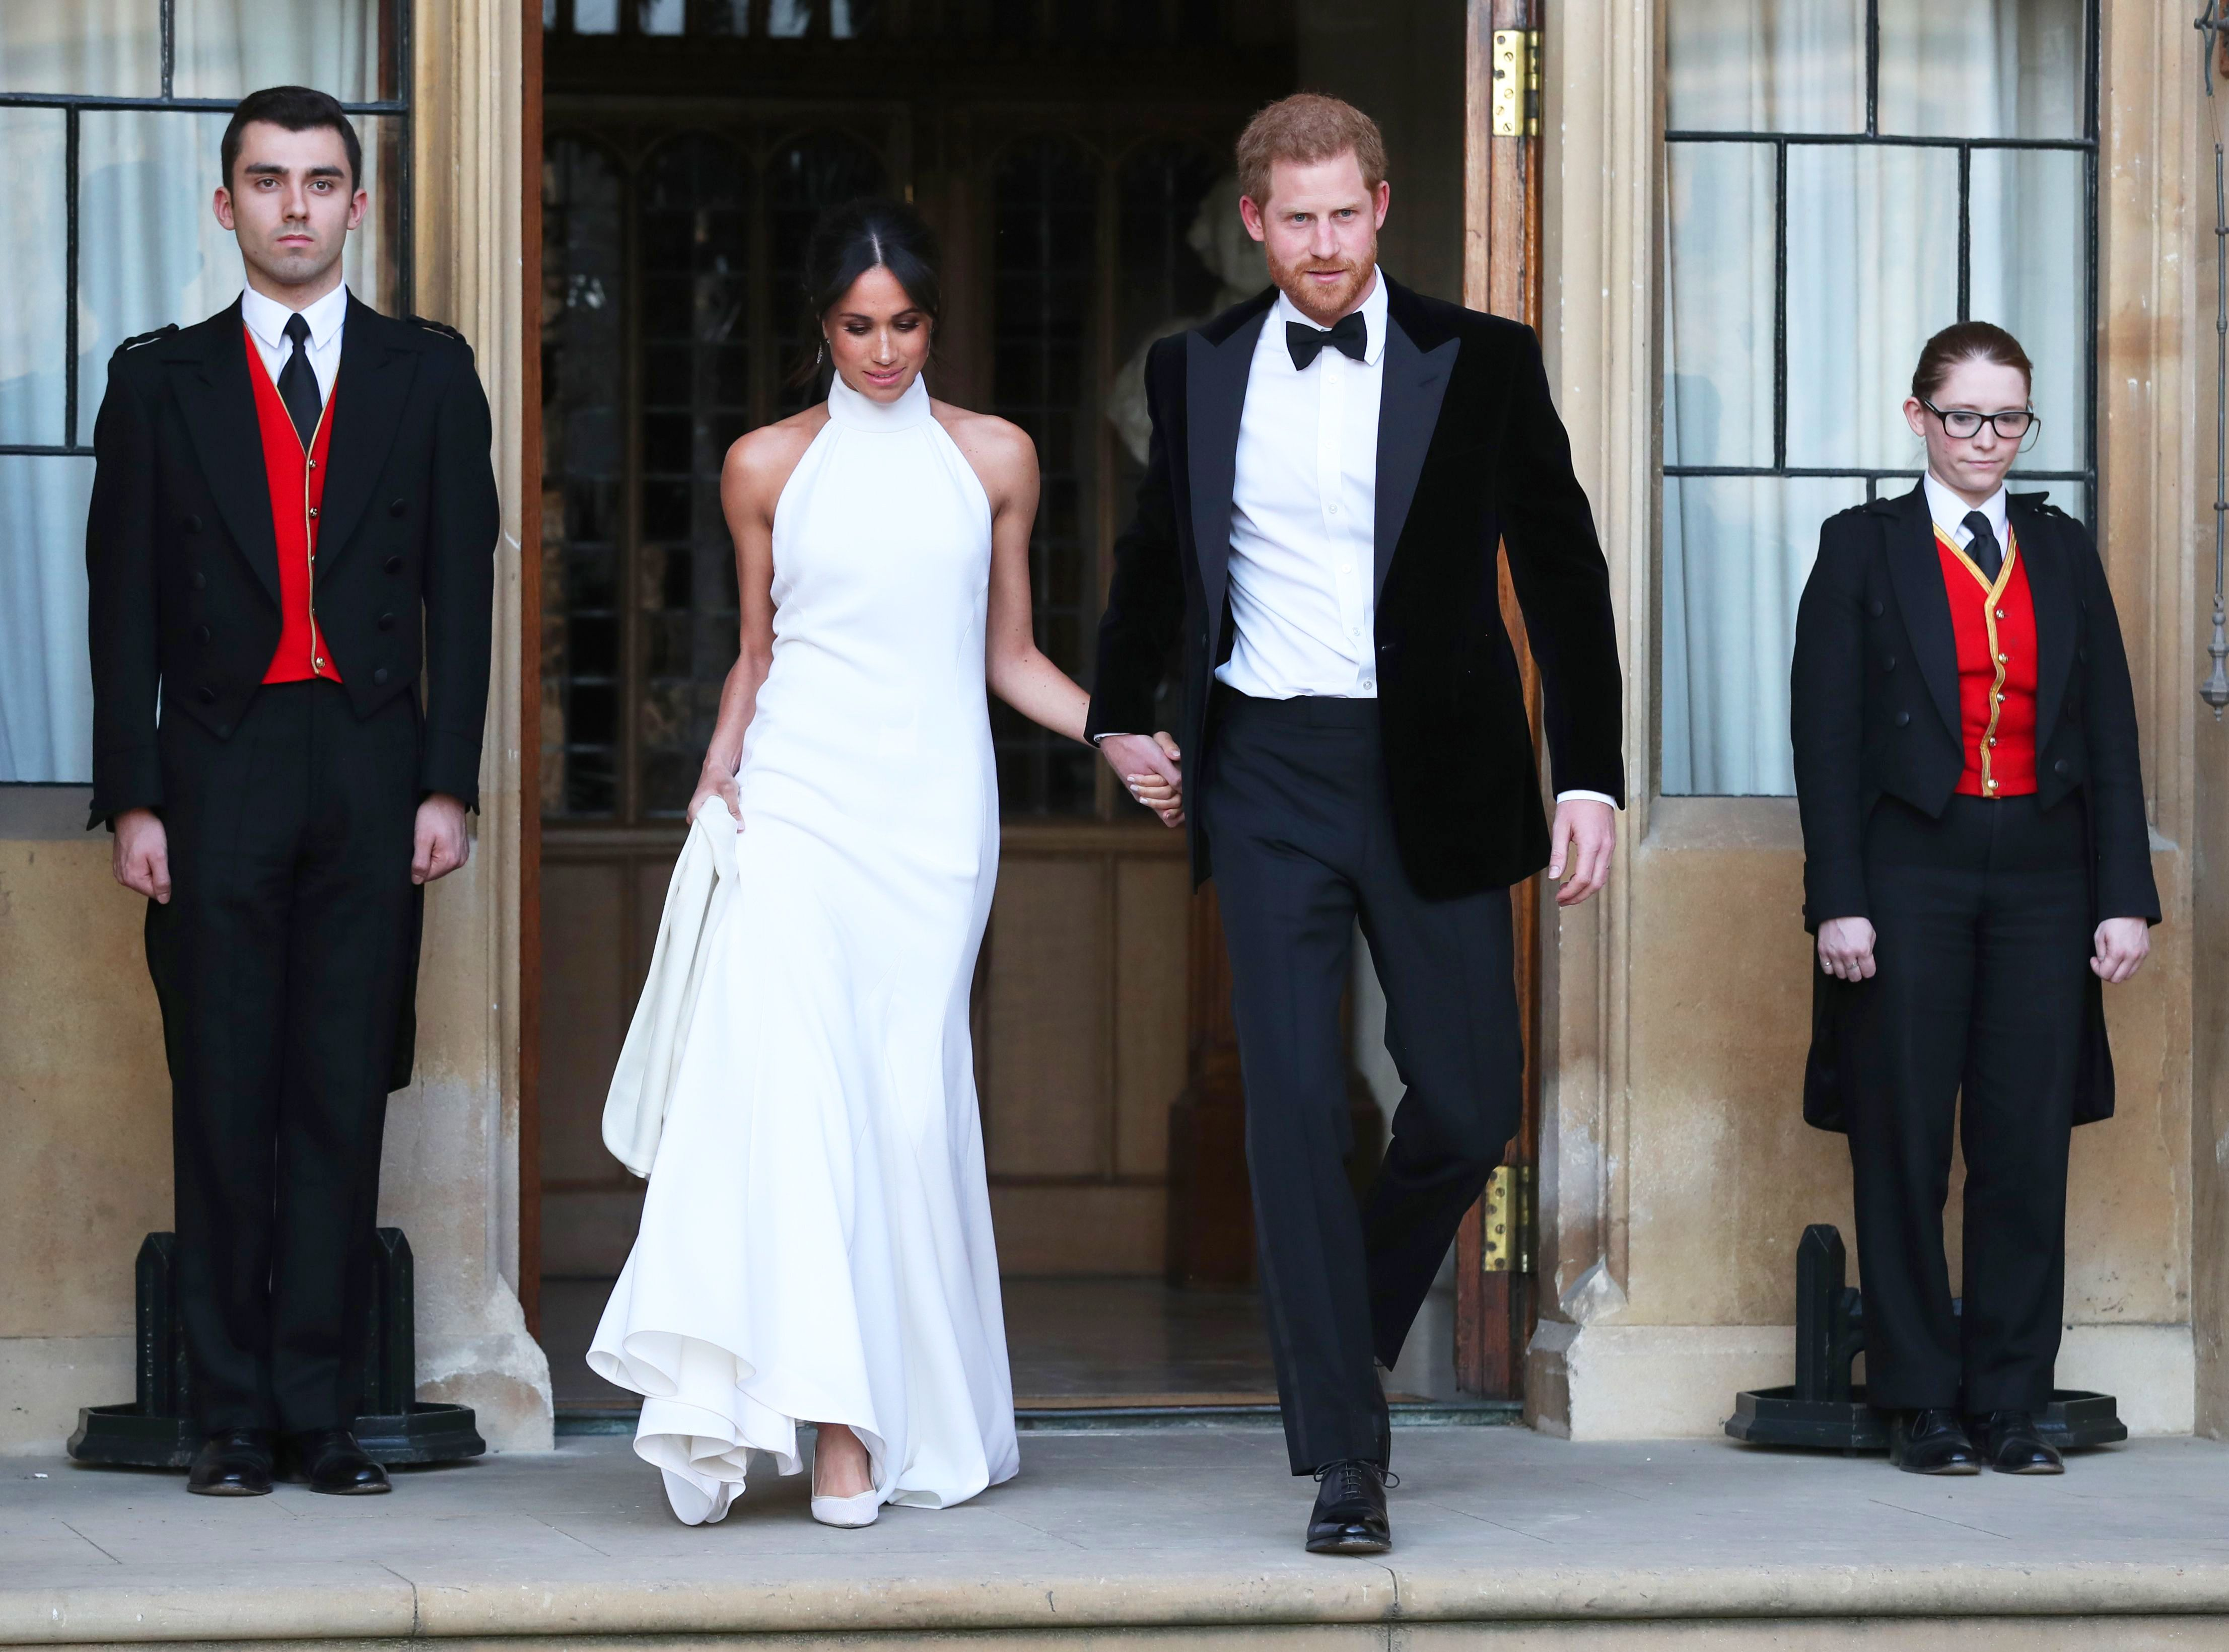 ce7ed9440 An Obsessive Timeline of Prince Harry and Meghan Markle's Relationship